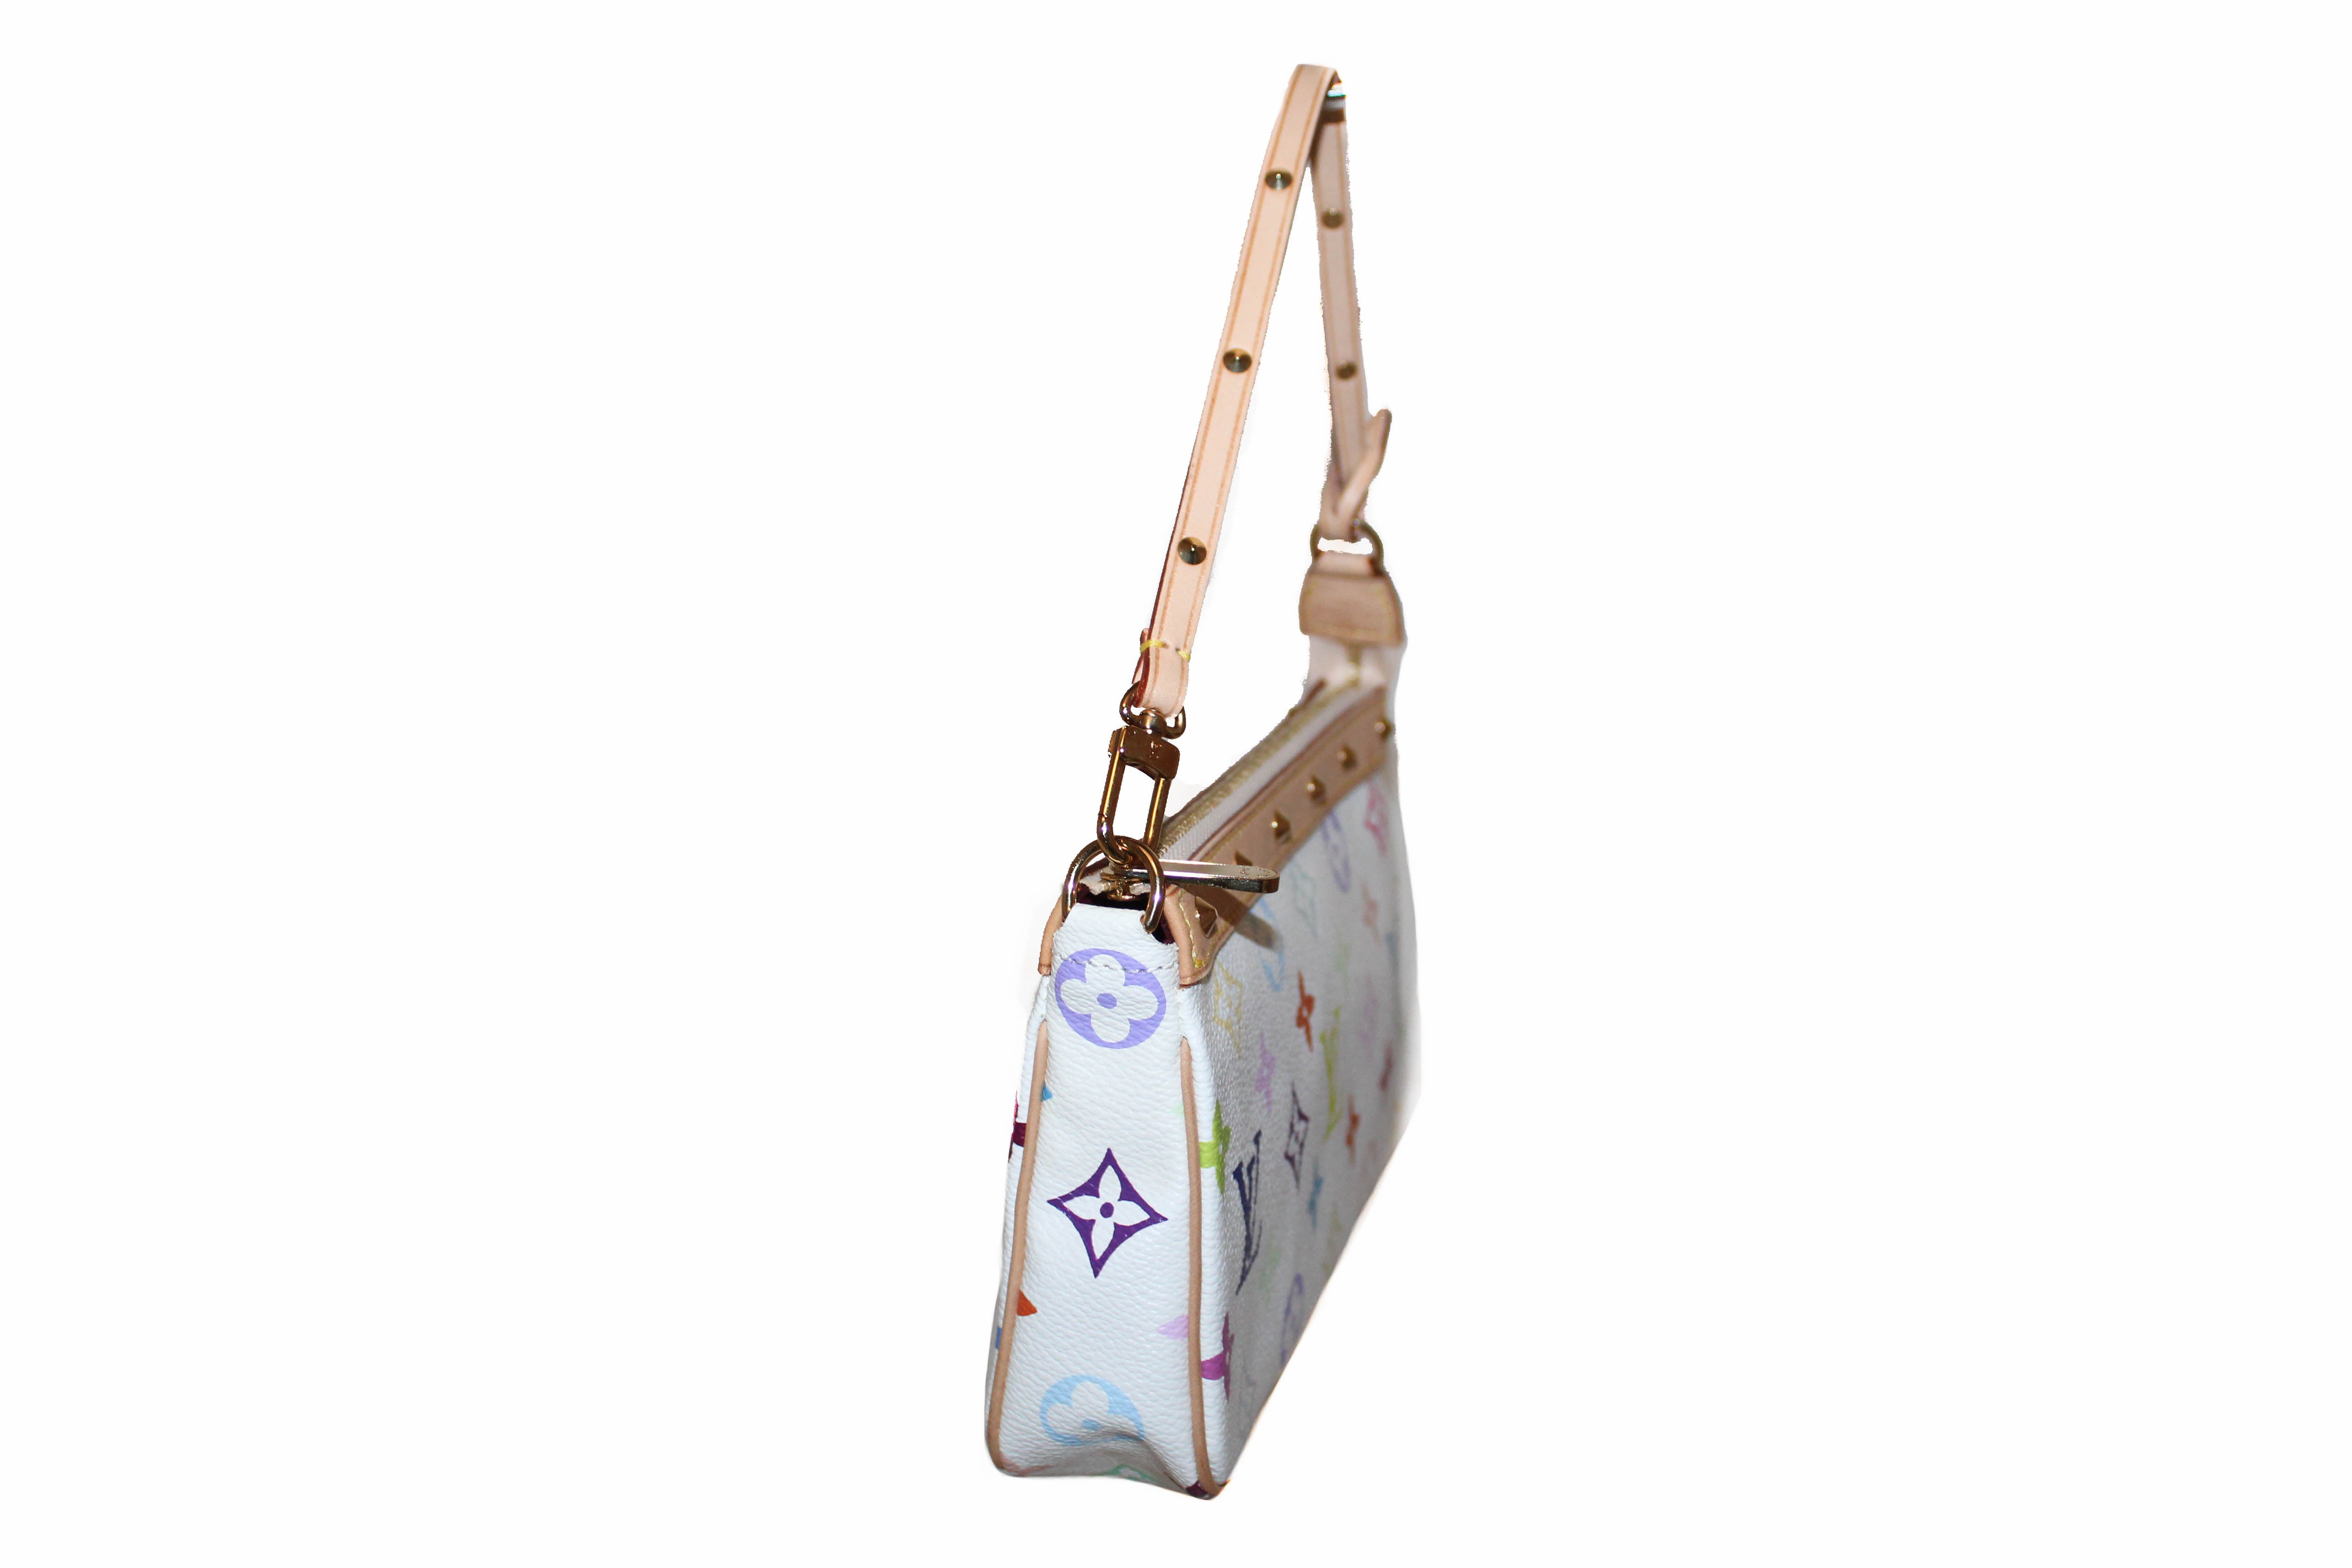 Authentic New Louis Vuitton White Multicolor Pochette Accessories Handbag